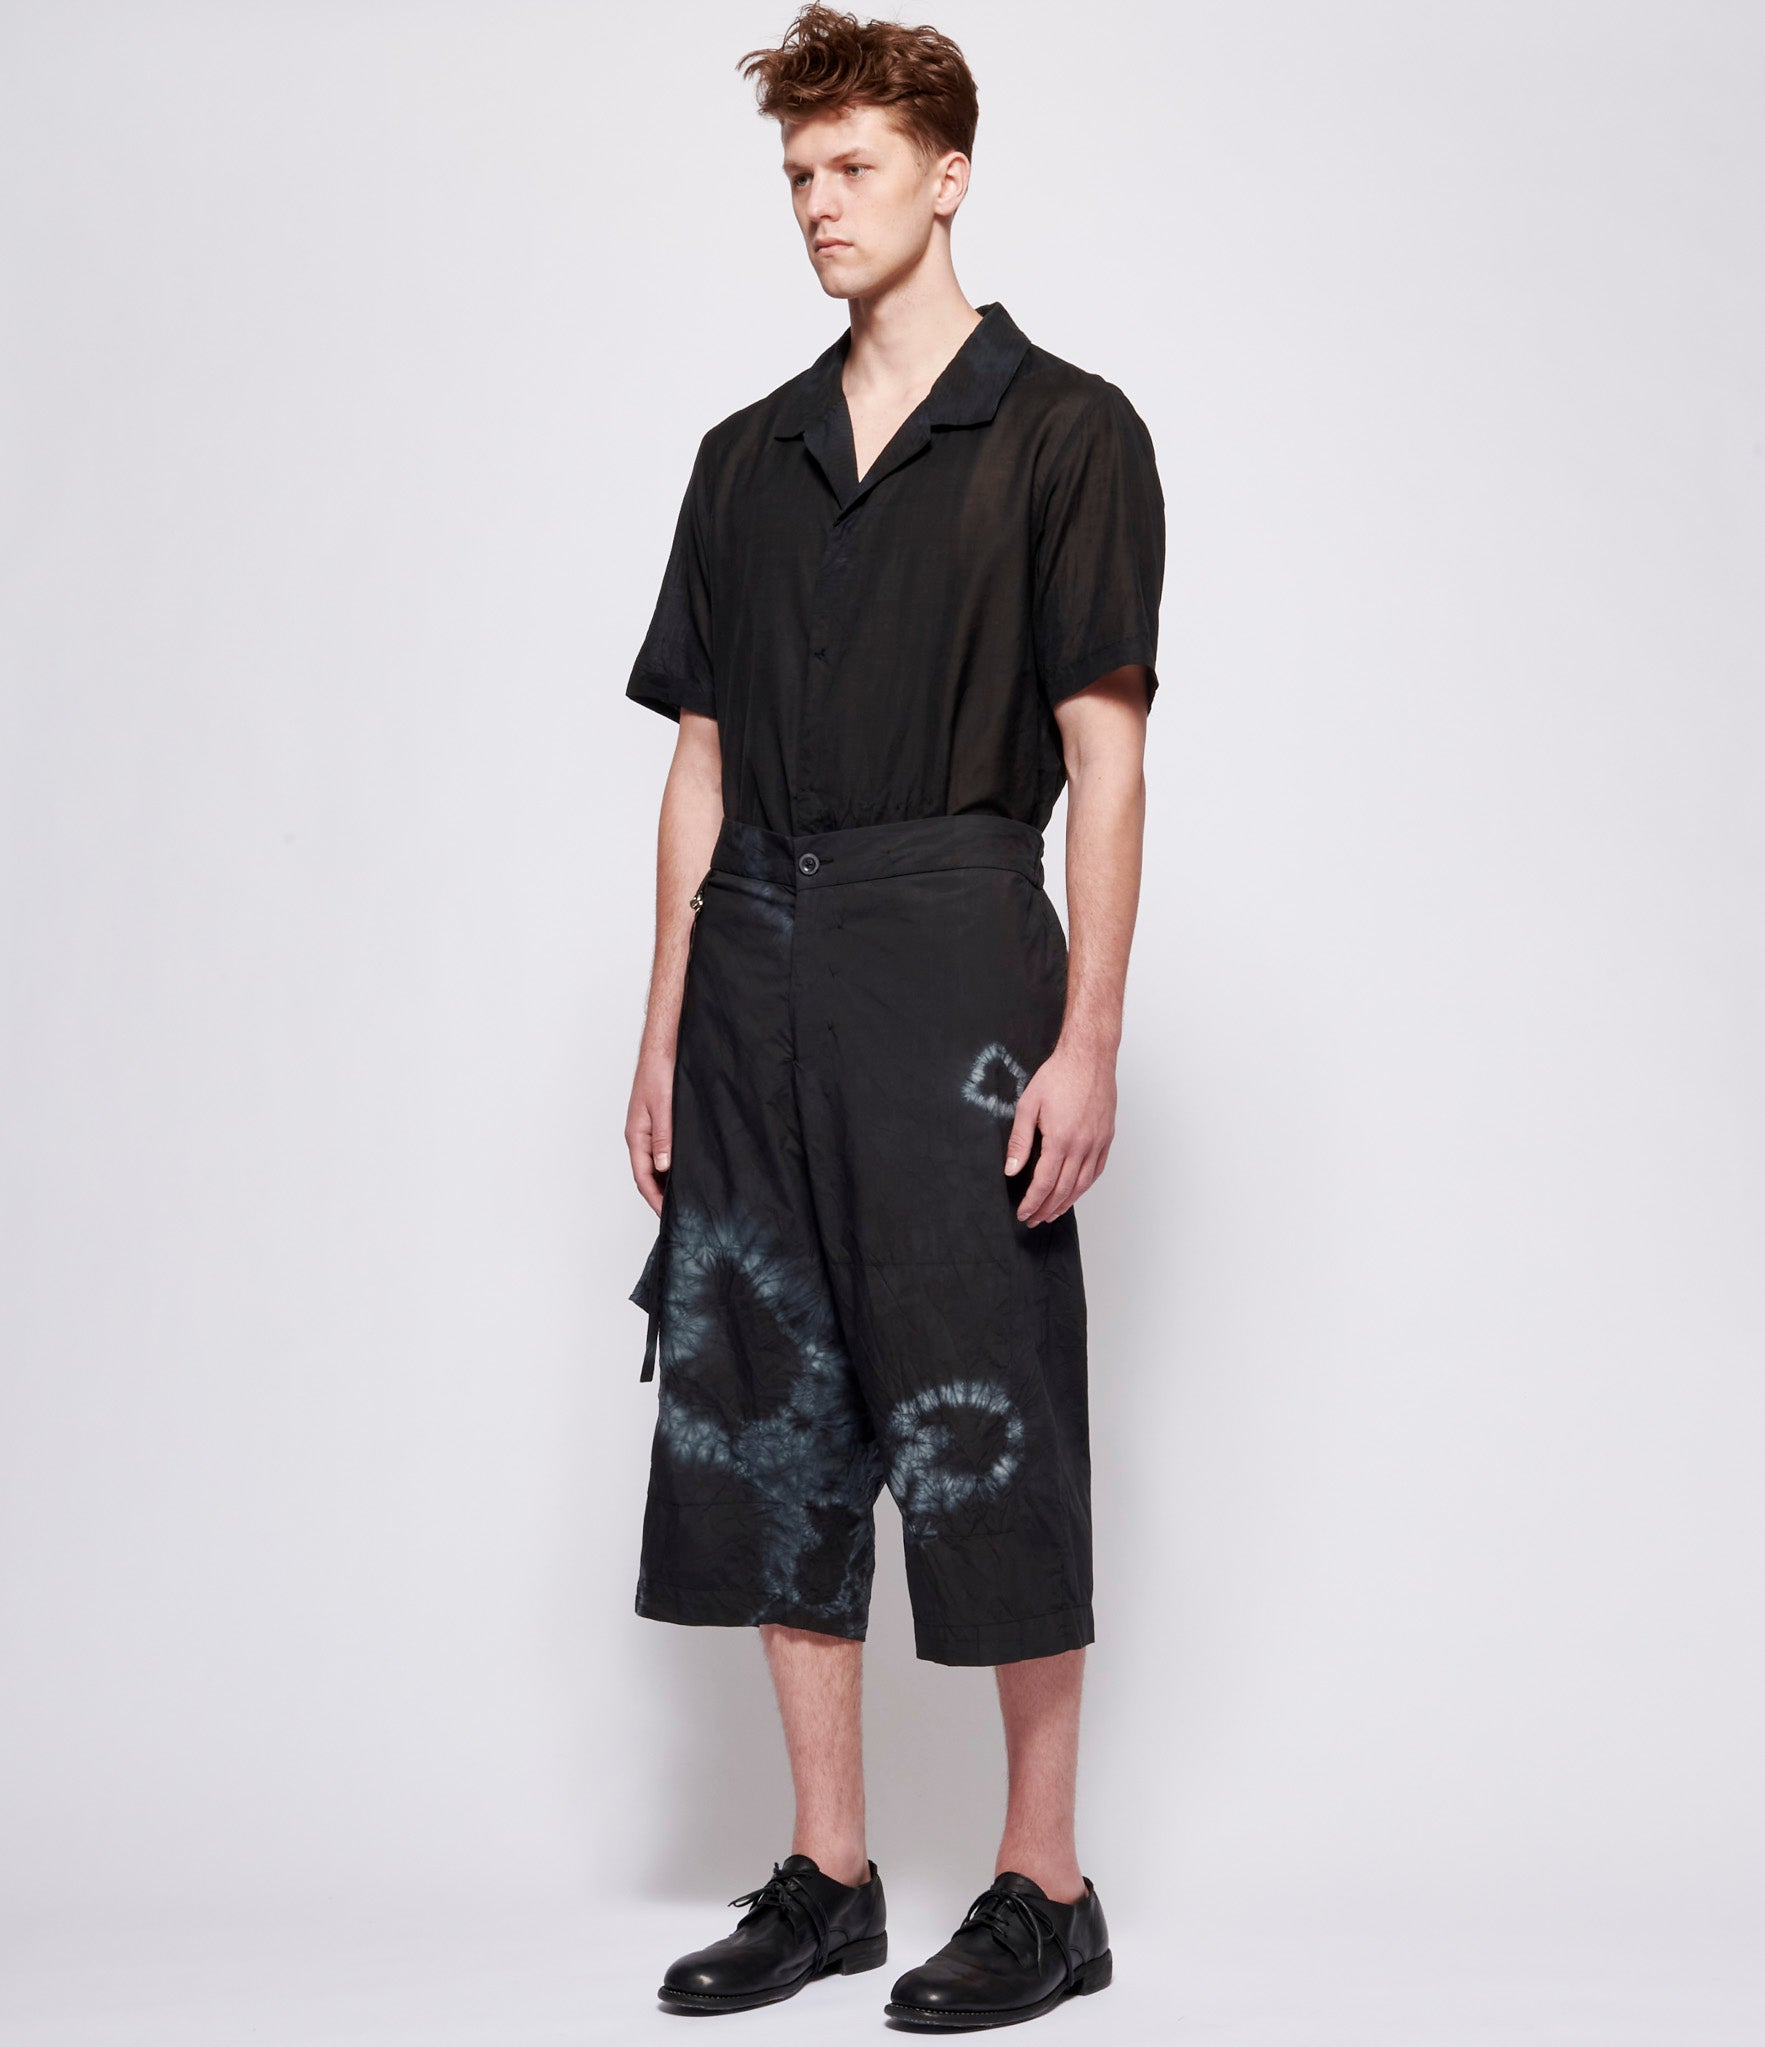 Atelier Suppan Lightweight Short with Detachable Bag Pocket